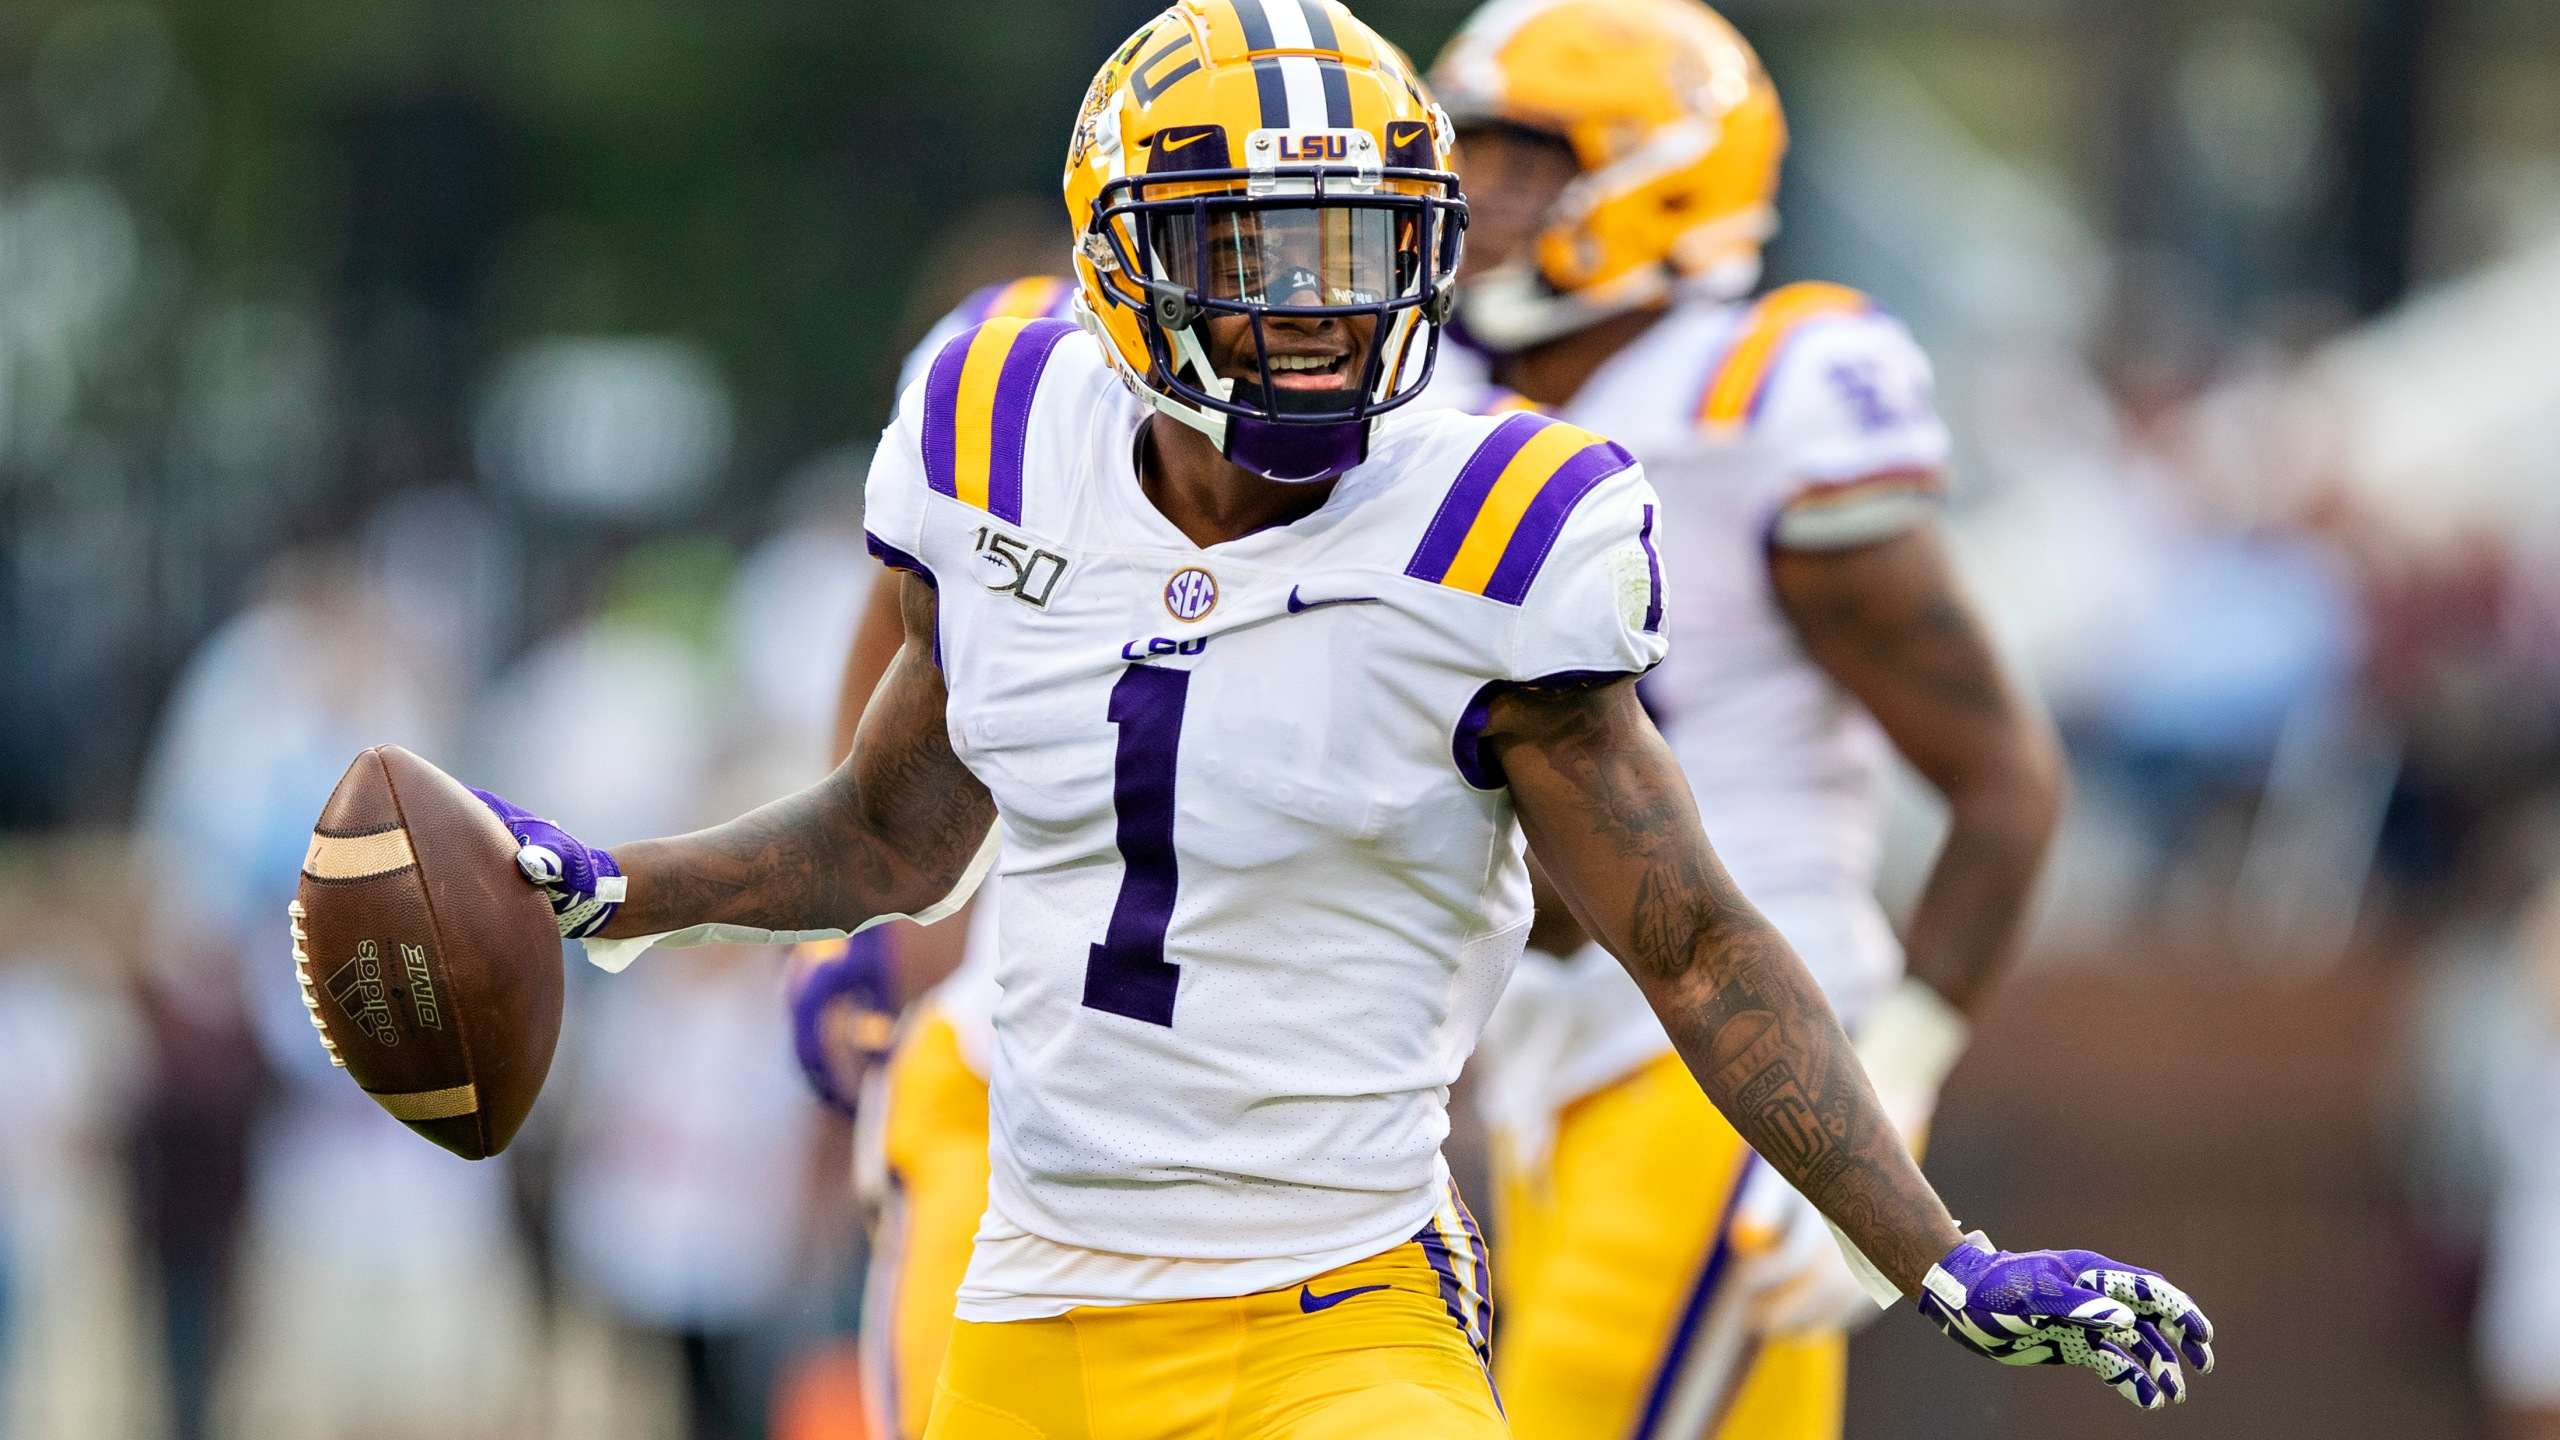 Lsu Football To Resume Voluntary Student Athlete Activities June 8 Wgno